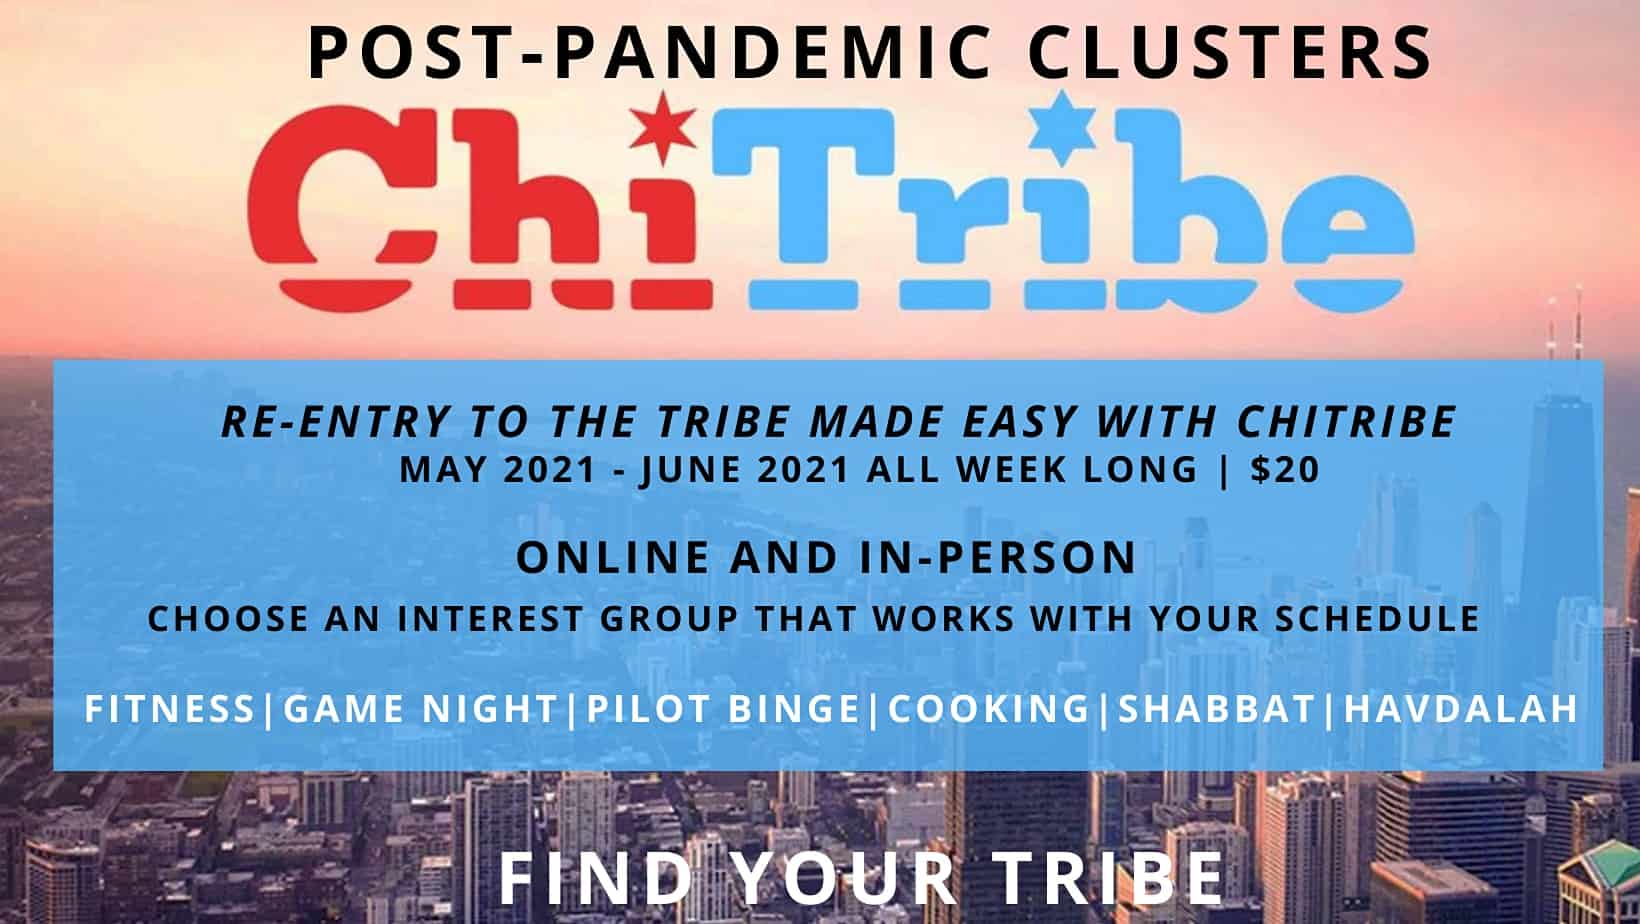 Post-Pandemic ChiTribe Clusters